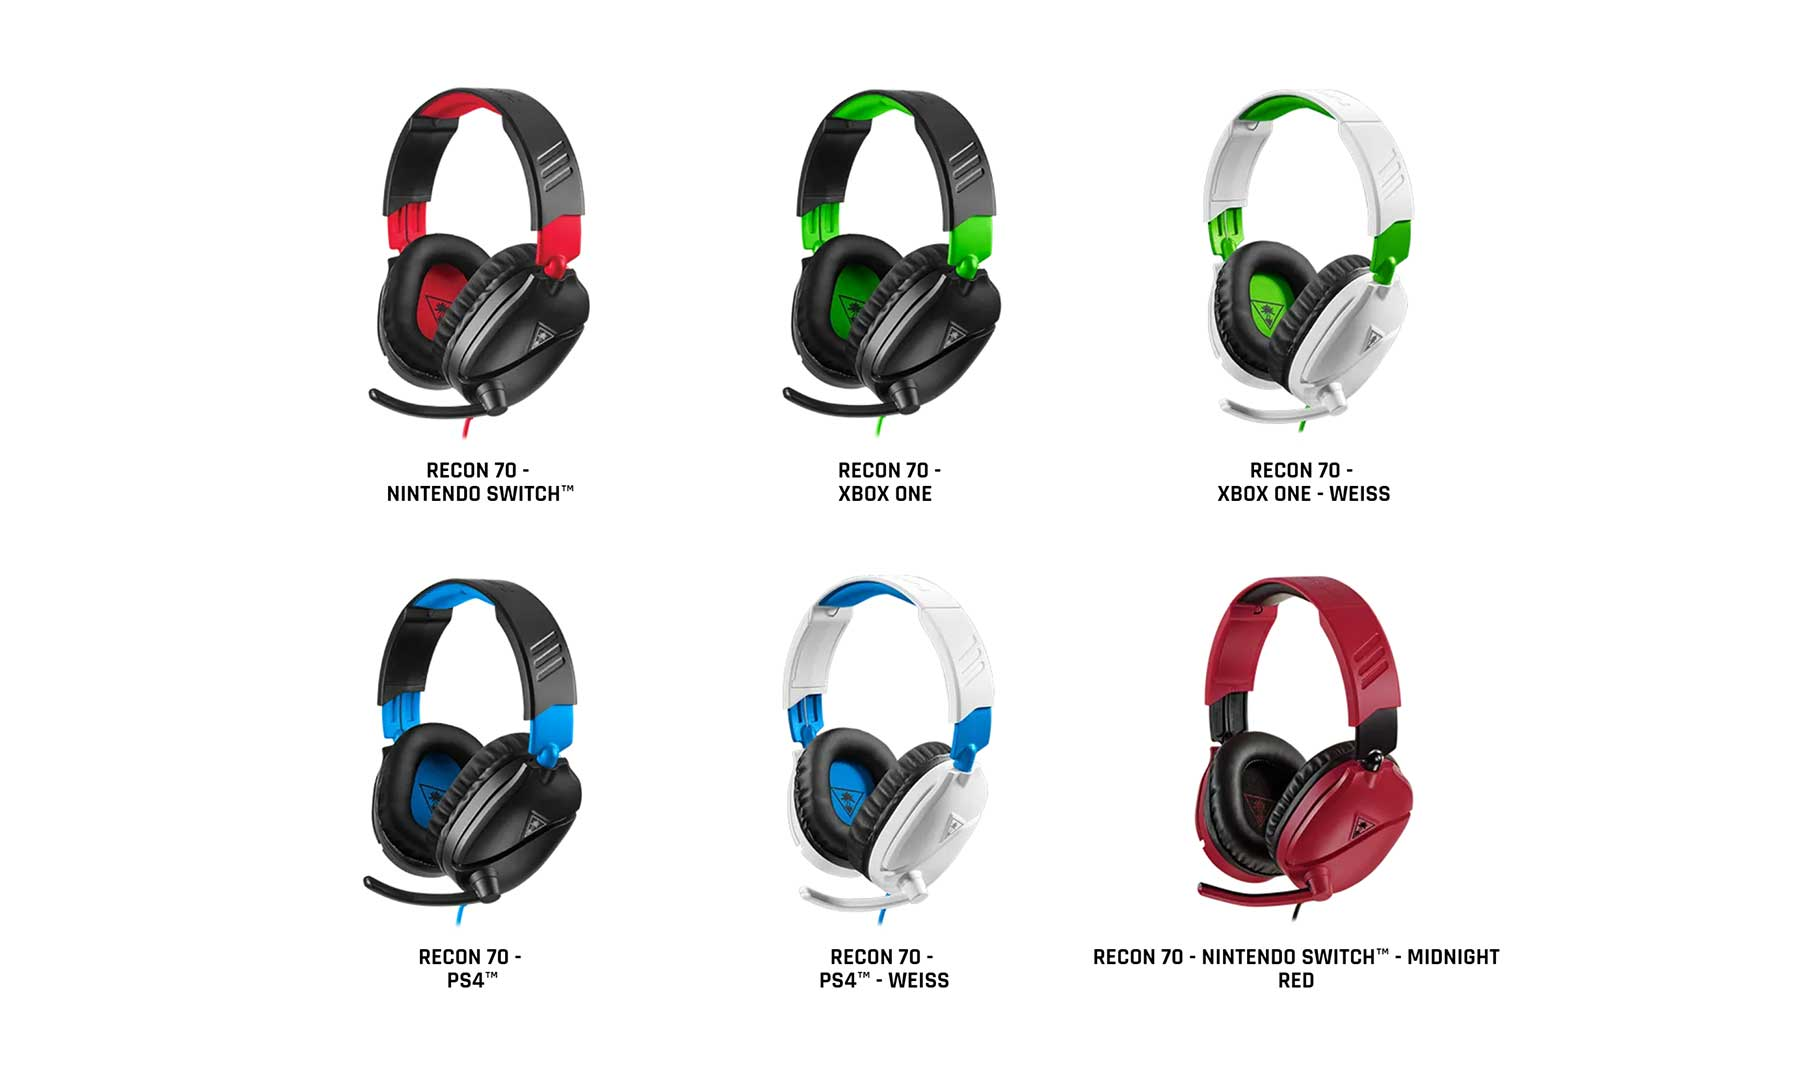 Ostergeschenk-Idee: Das neue Turtle Beach Recon 70 Gaming Headset Turtle-Beach-Recon-70-Gaming-Headset_02